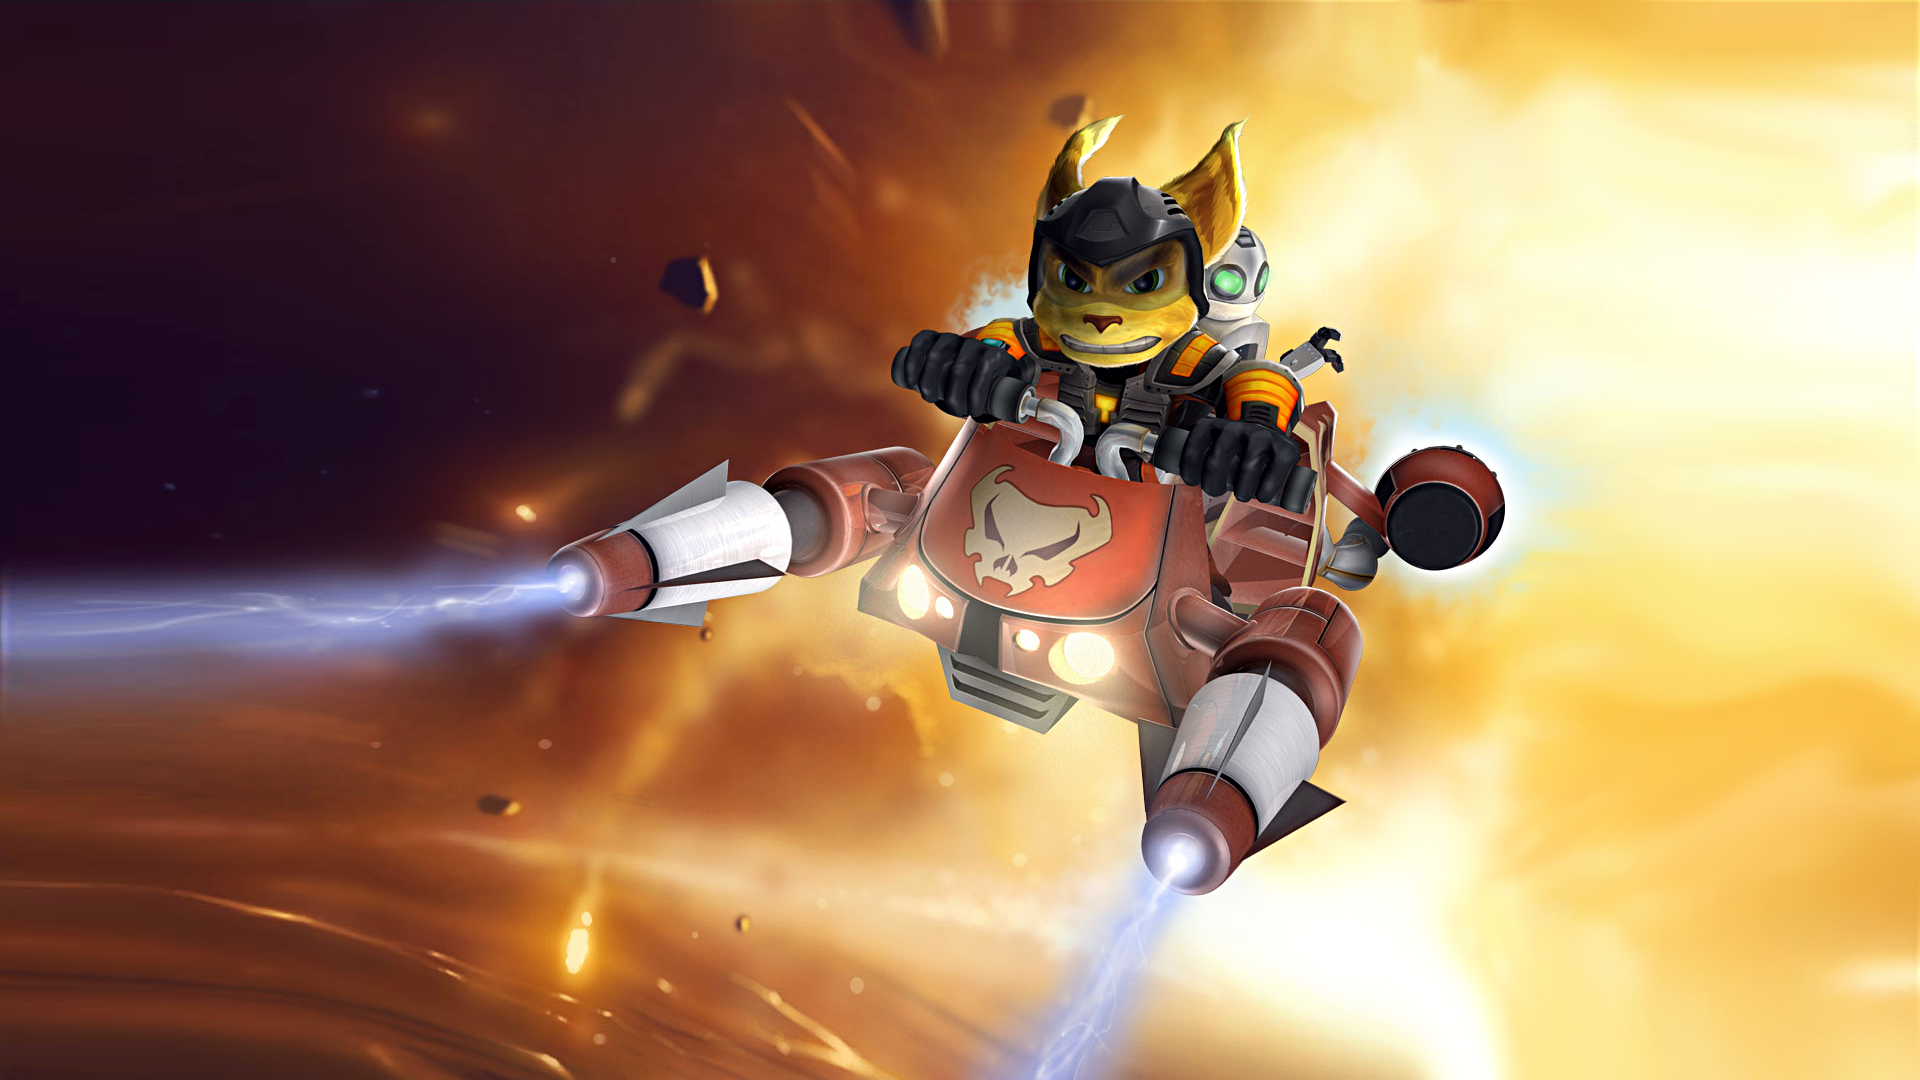 Ratchet Clank Wallpapers Posted By Sarah Tremblay